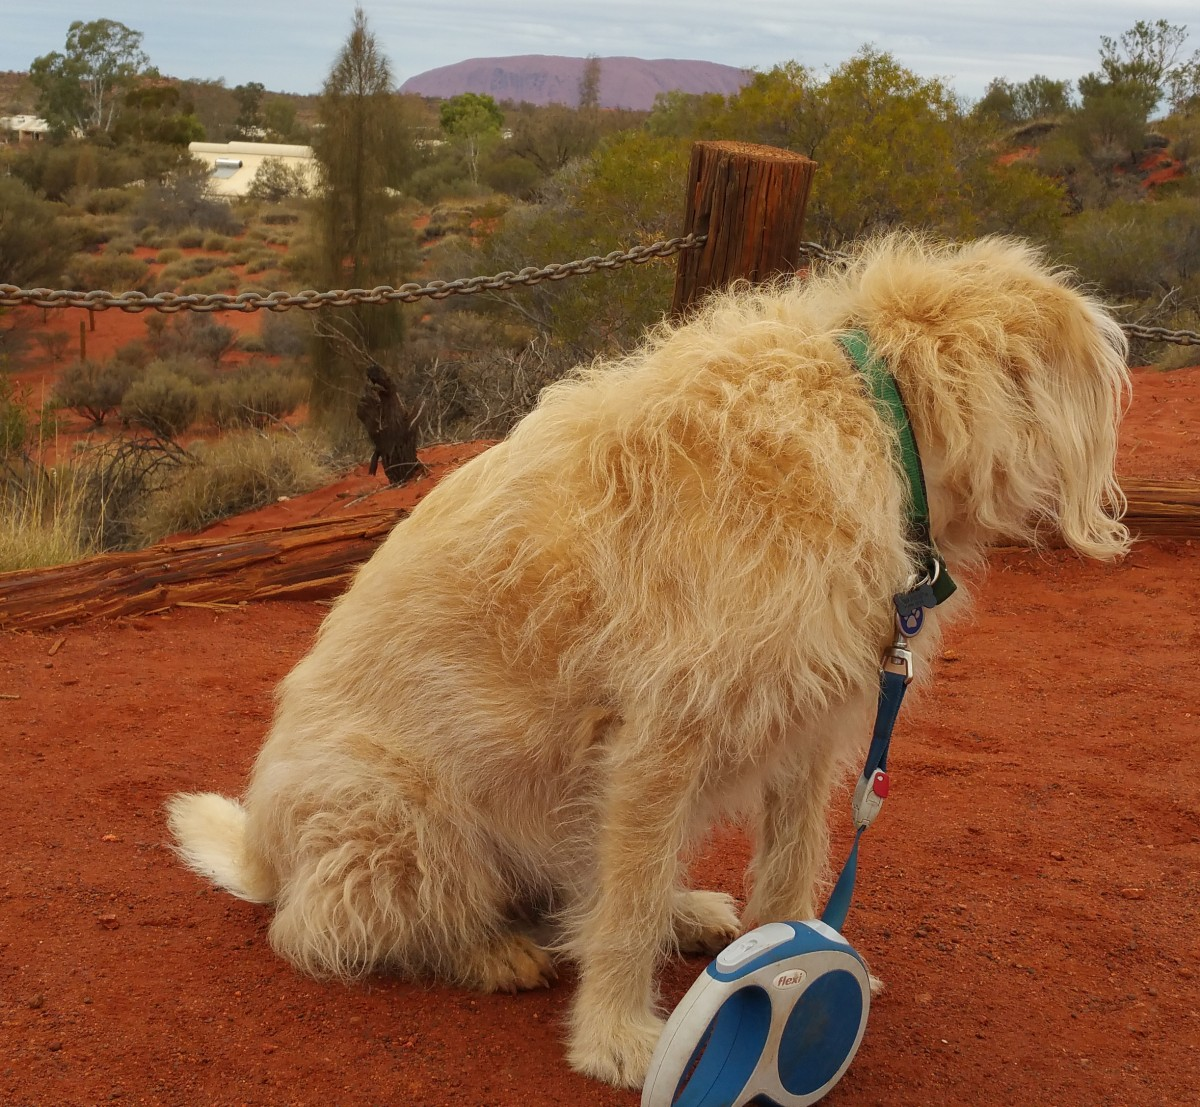 As close as Dog can get to Uluru